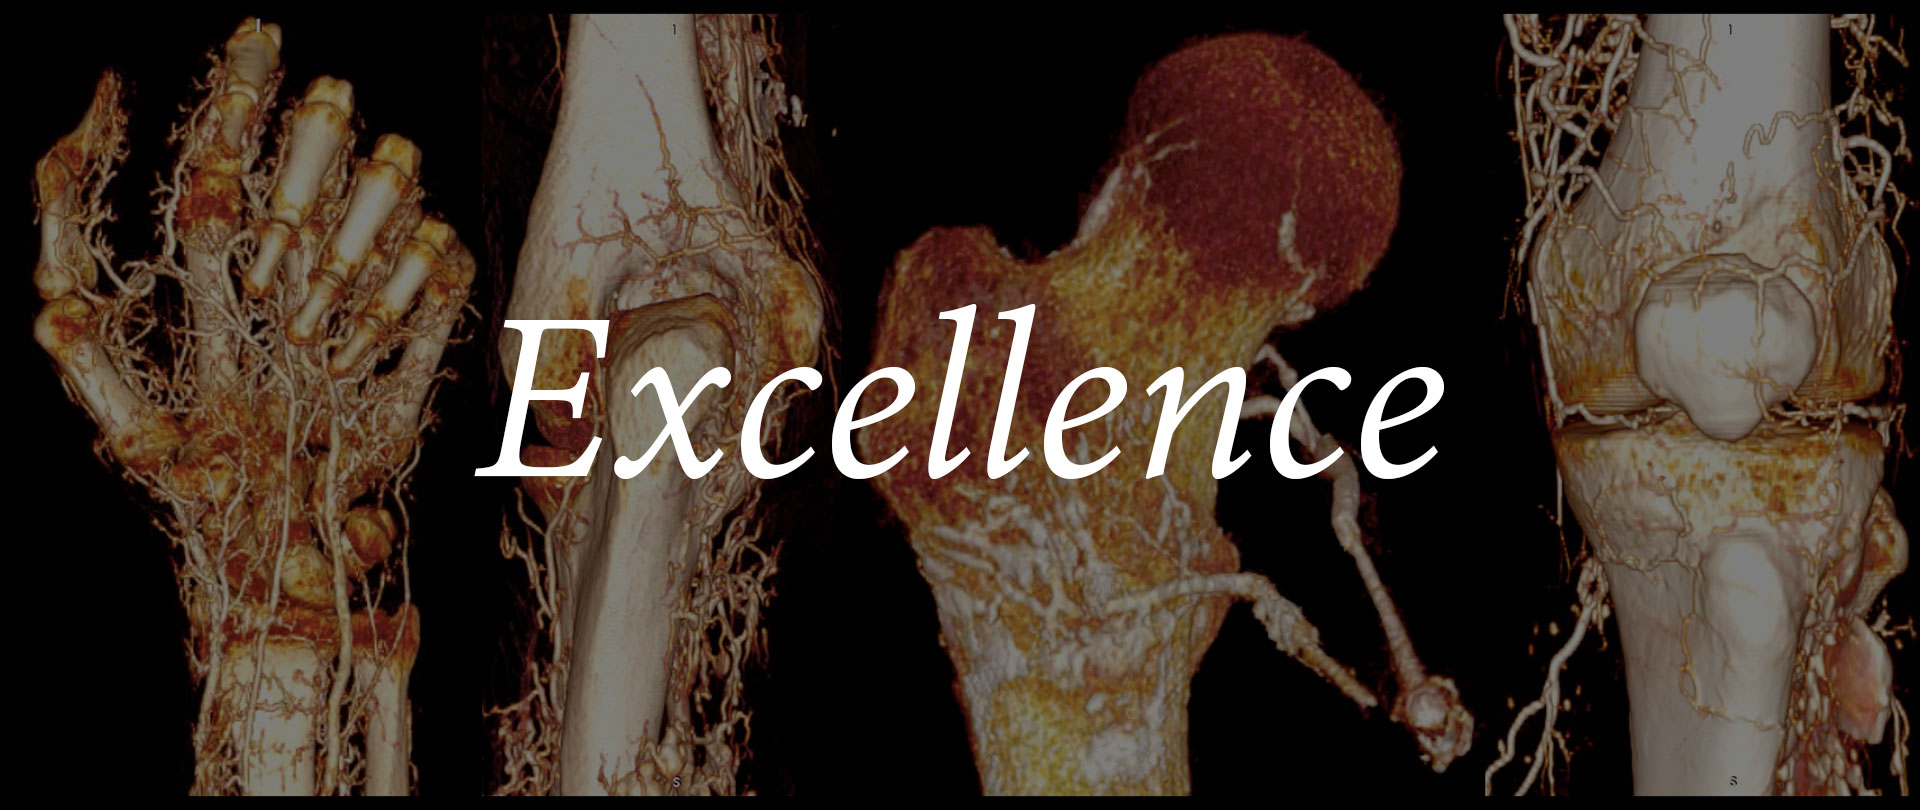 Excellence in patient care and research